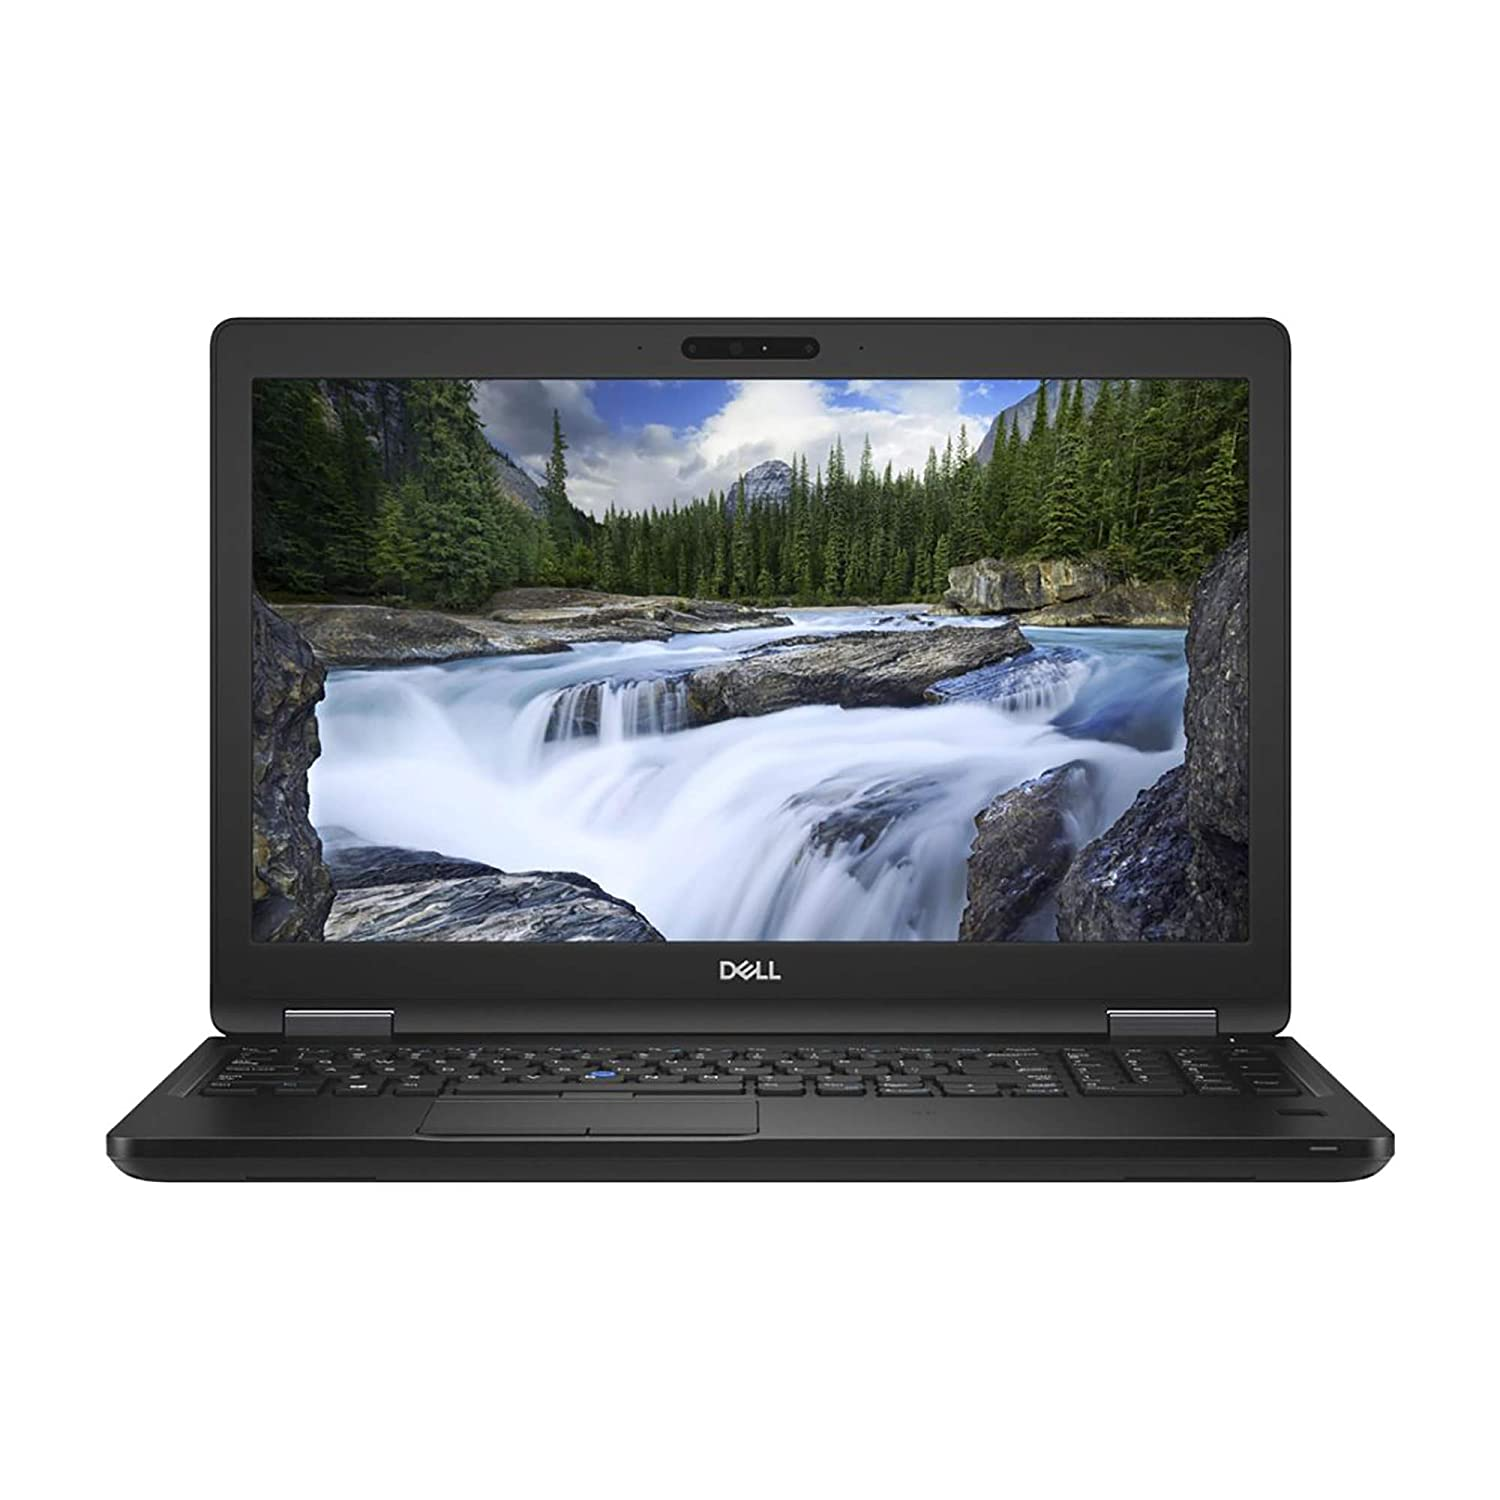 Dell Latitude 5491 1920 x 1080 LCD Laptop with Intel Core i7-8850H 2.6 GHz Hexa-Core, 8GB RAM, 256GB SSD, 14